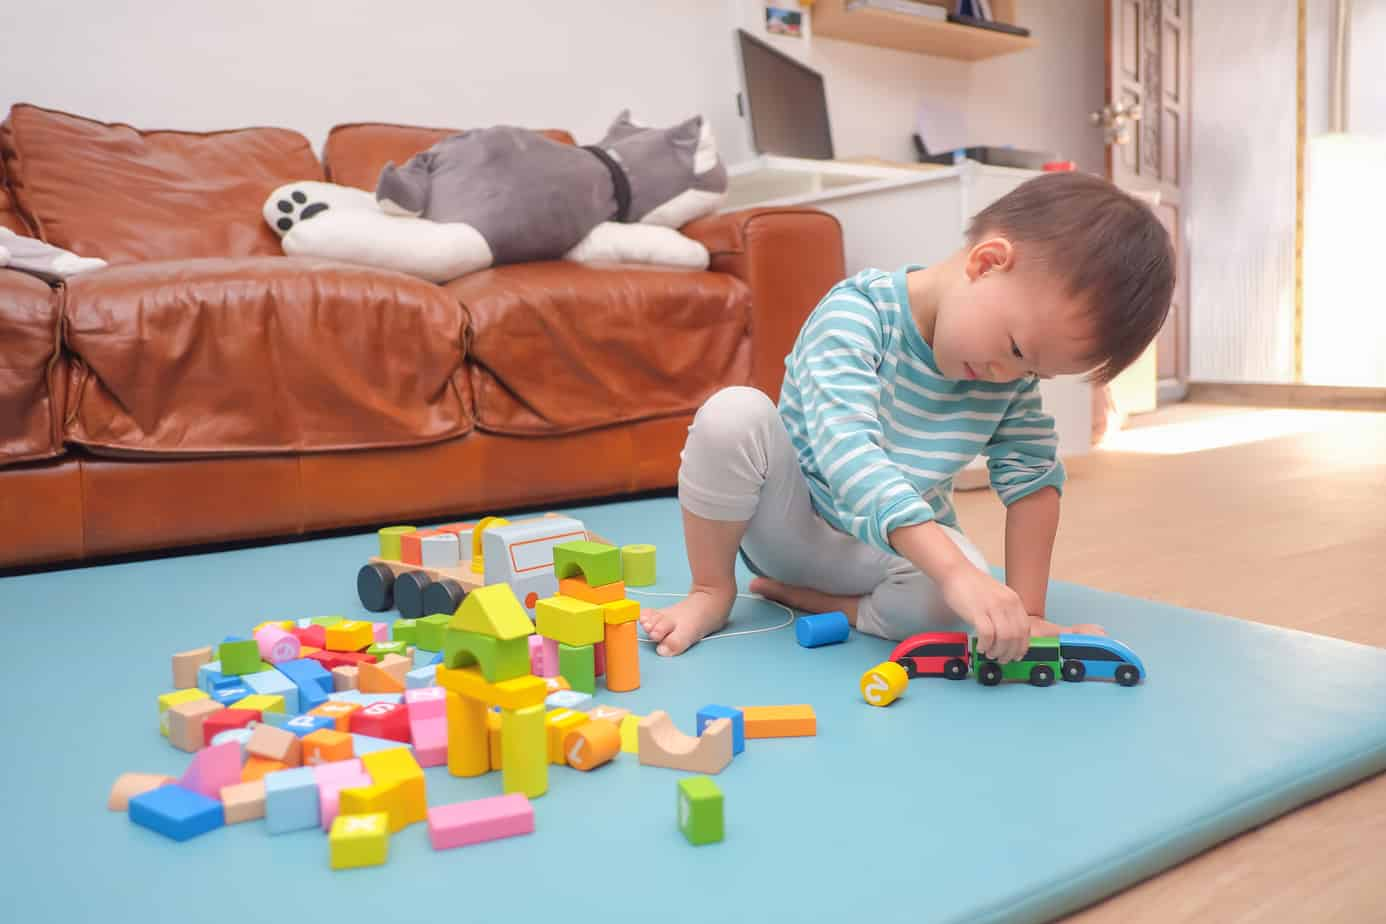 2 - 3 years old toddler boy child having fun playing with wooden building block toys indoor